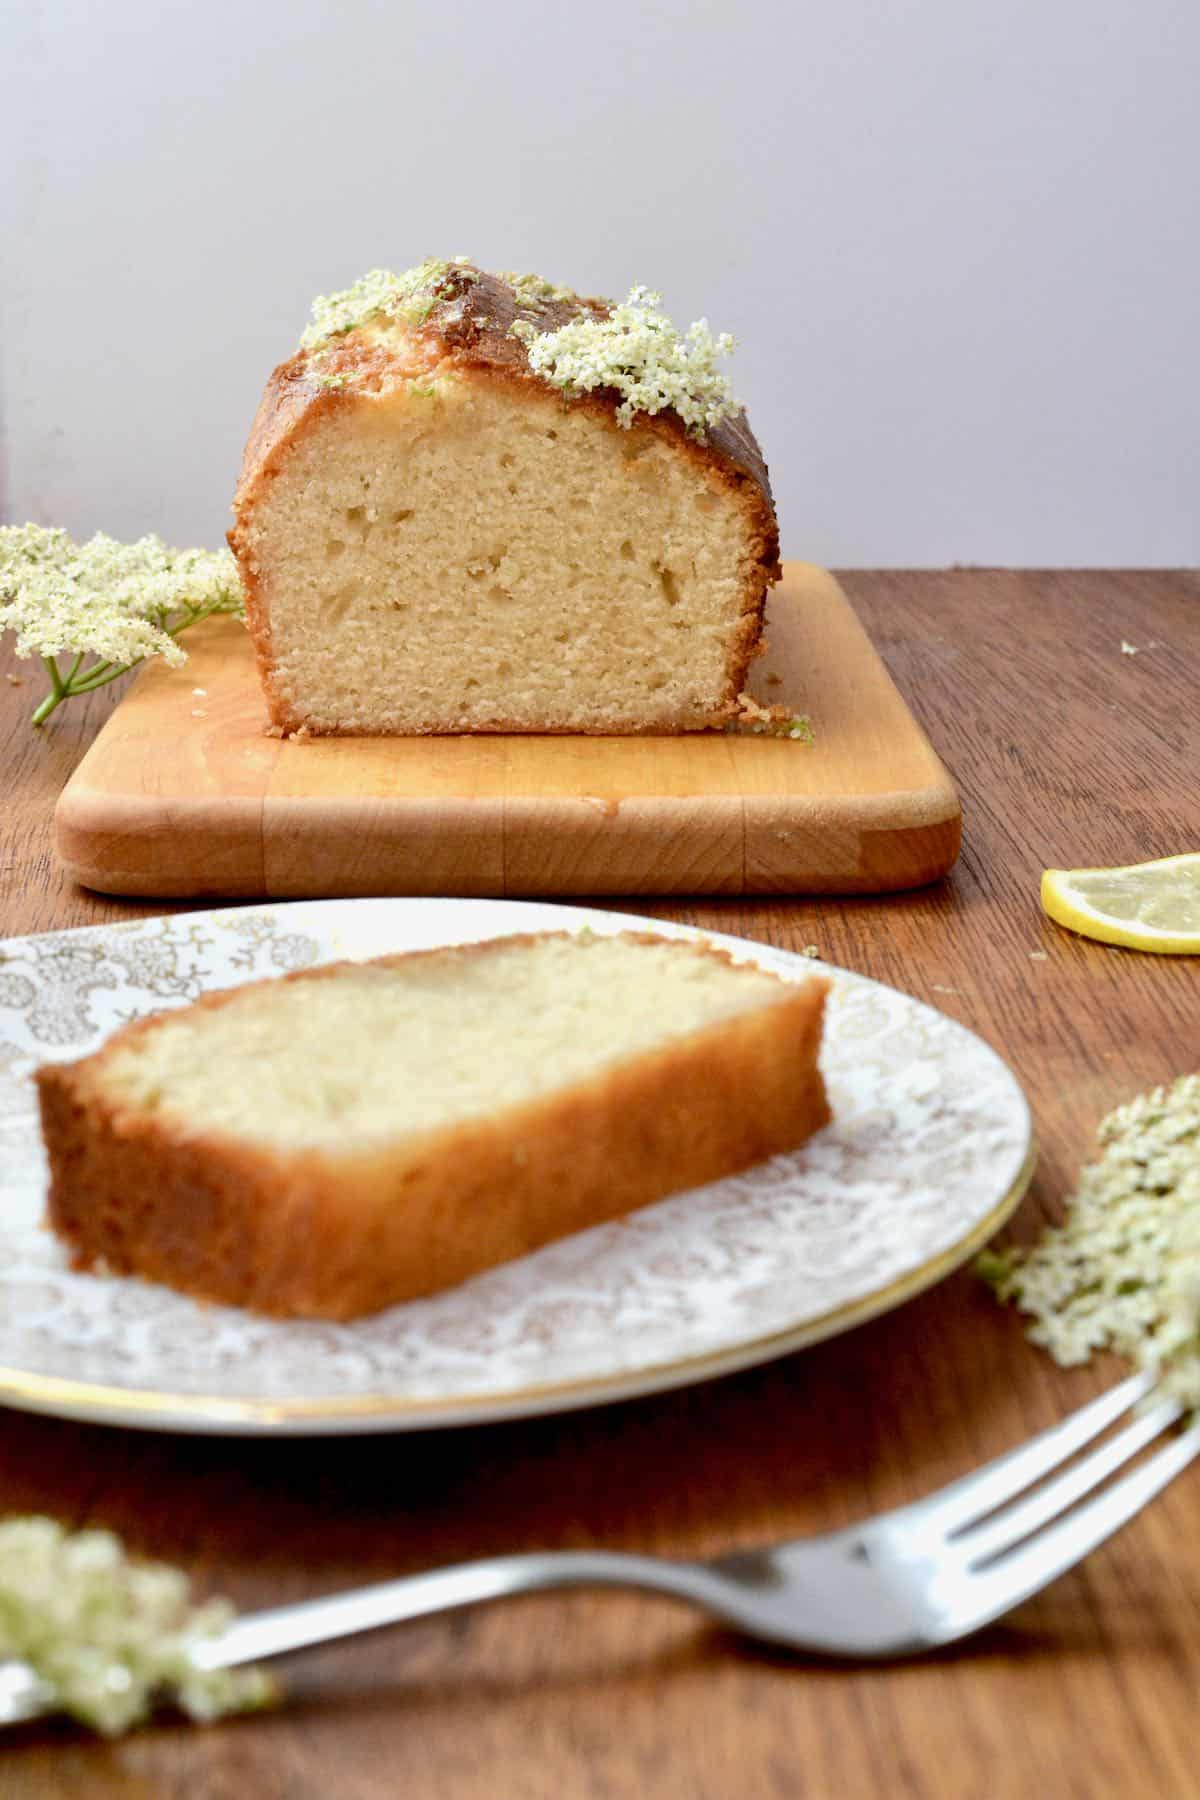 A slice of elderflower cake on a plate, with the loaf in the background